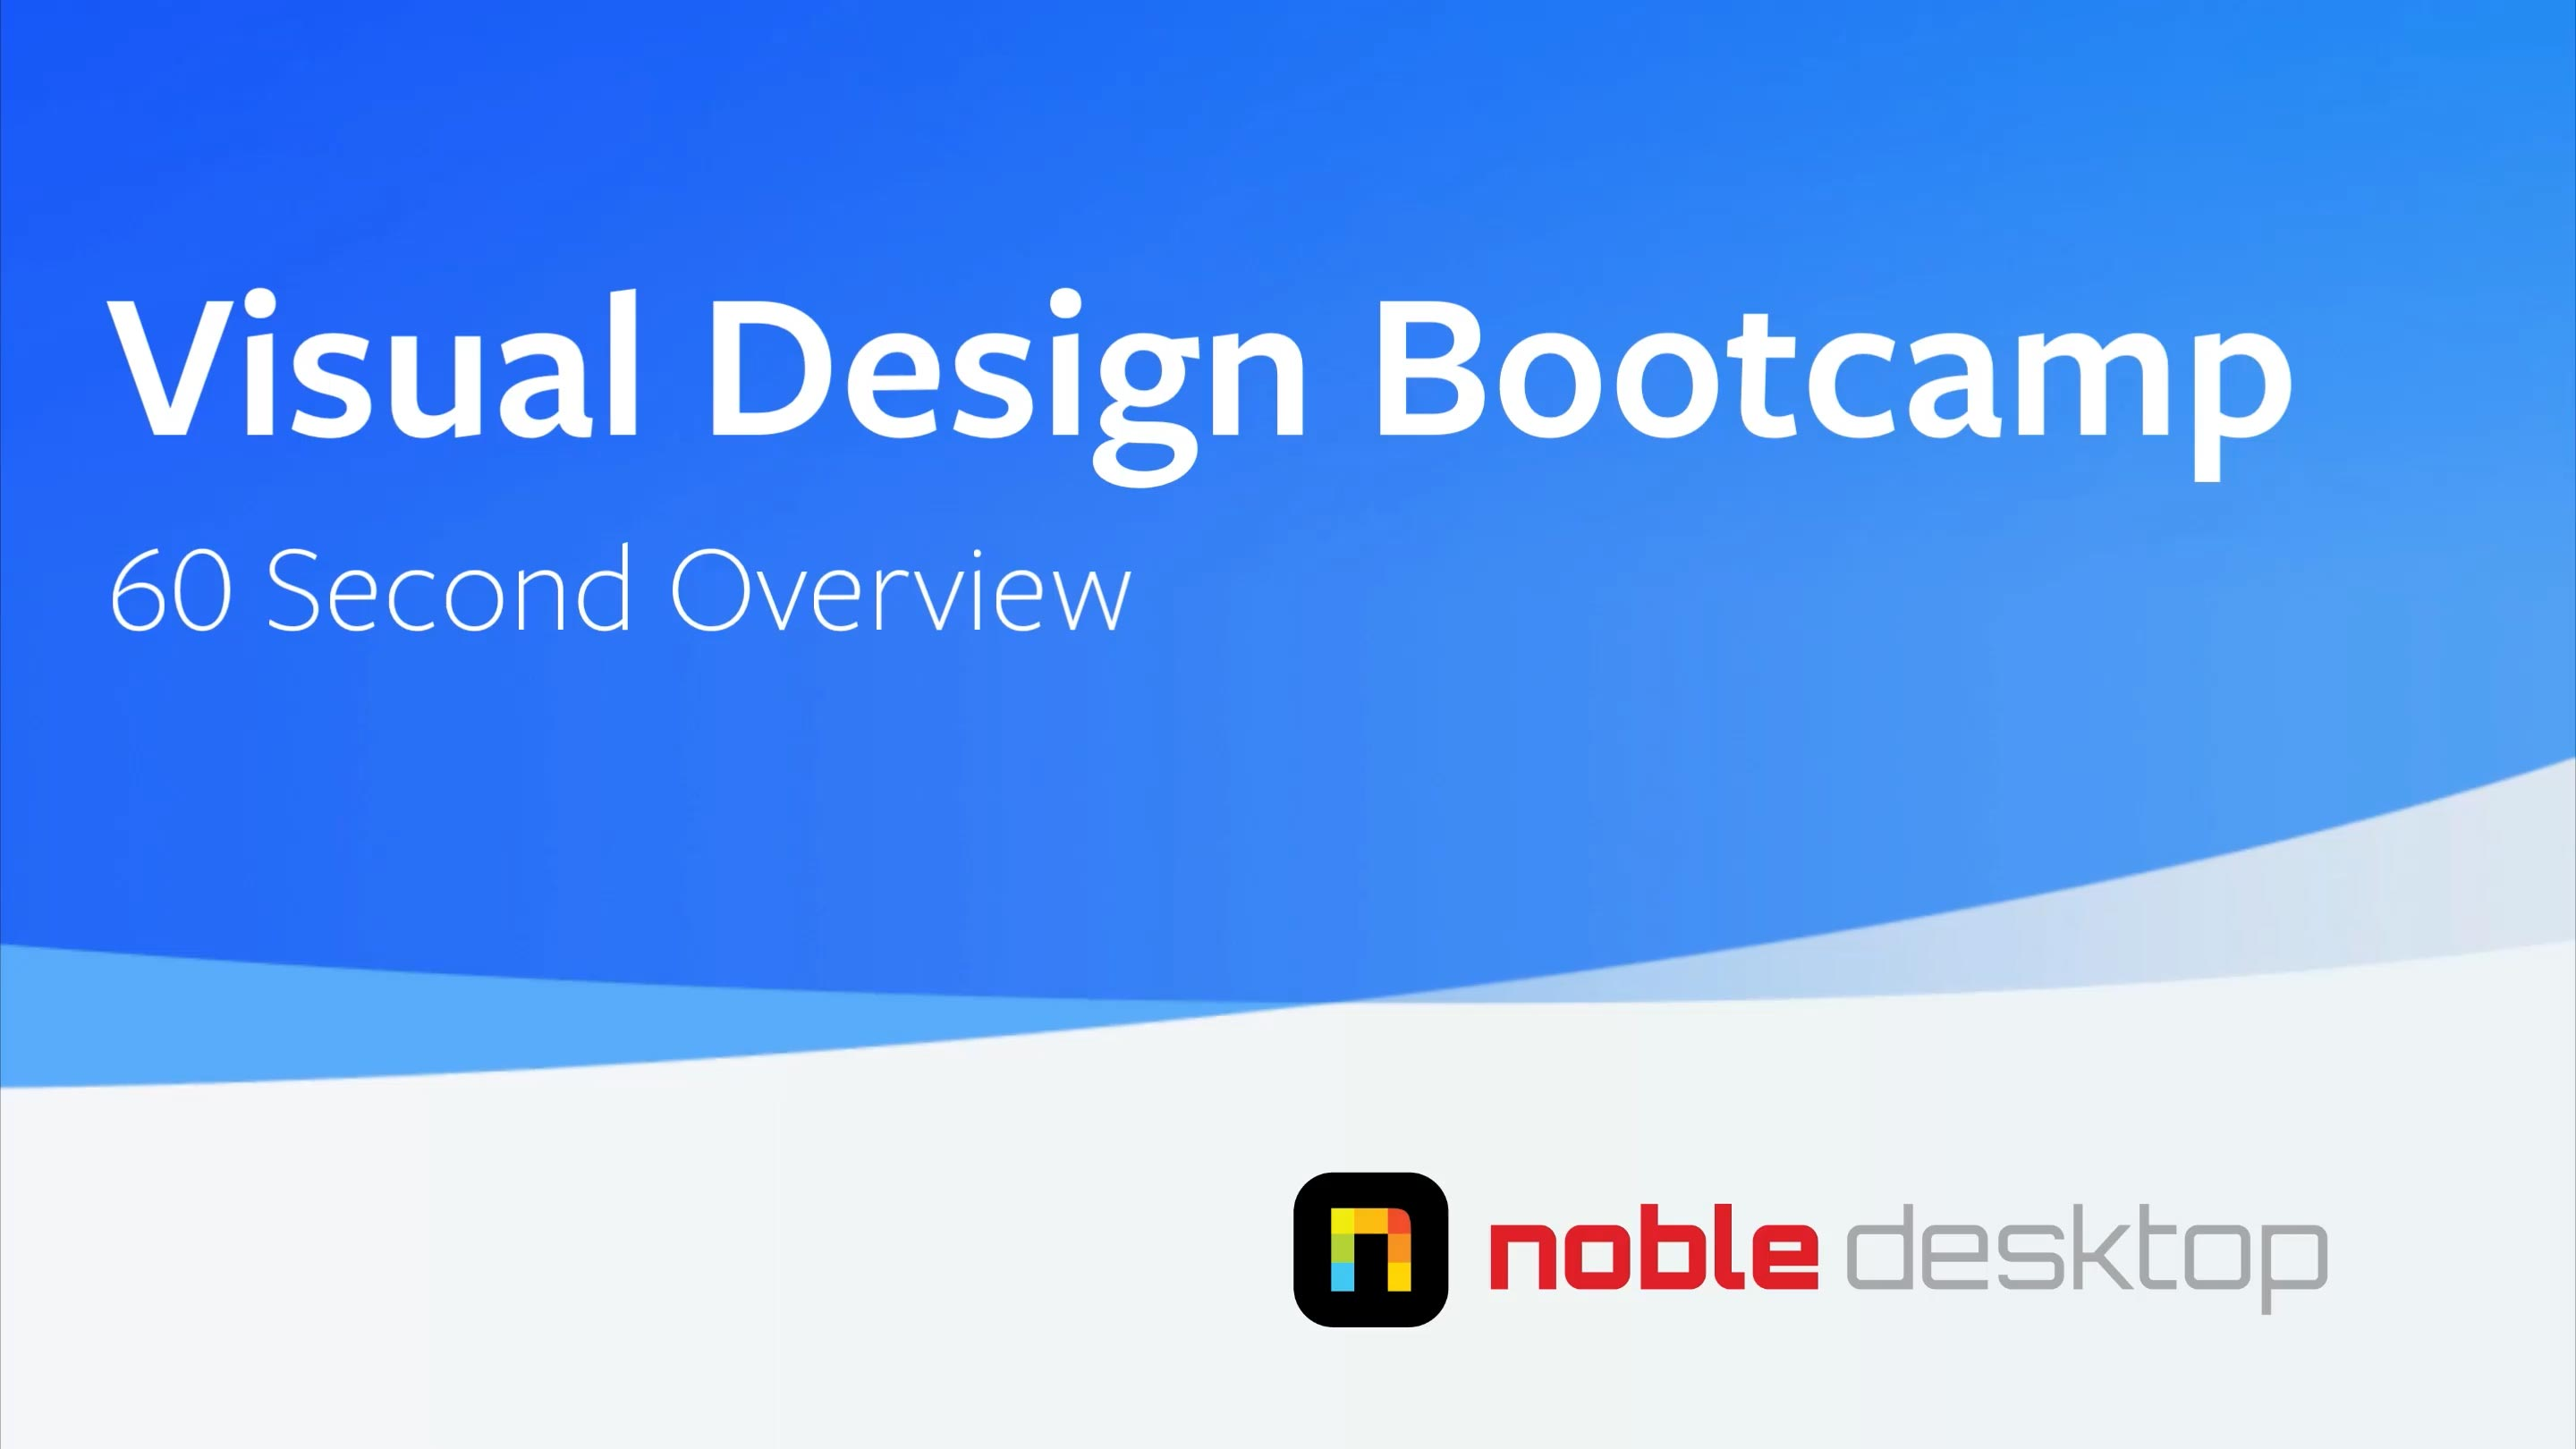 Visual Design Bootcamp Class Overview